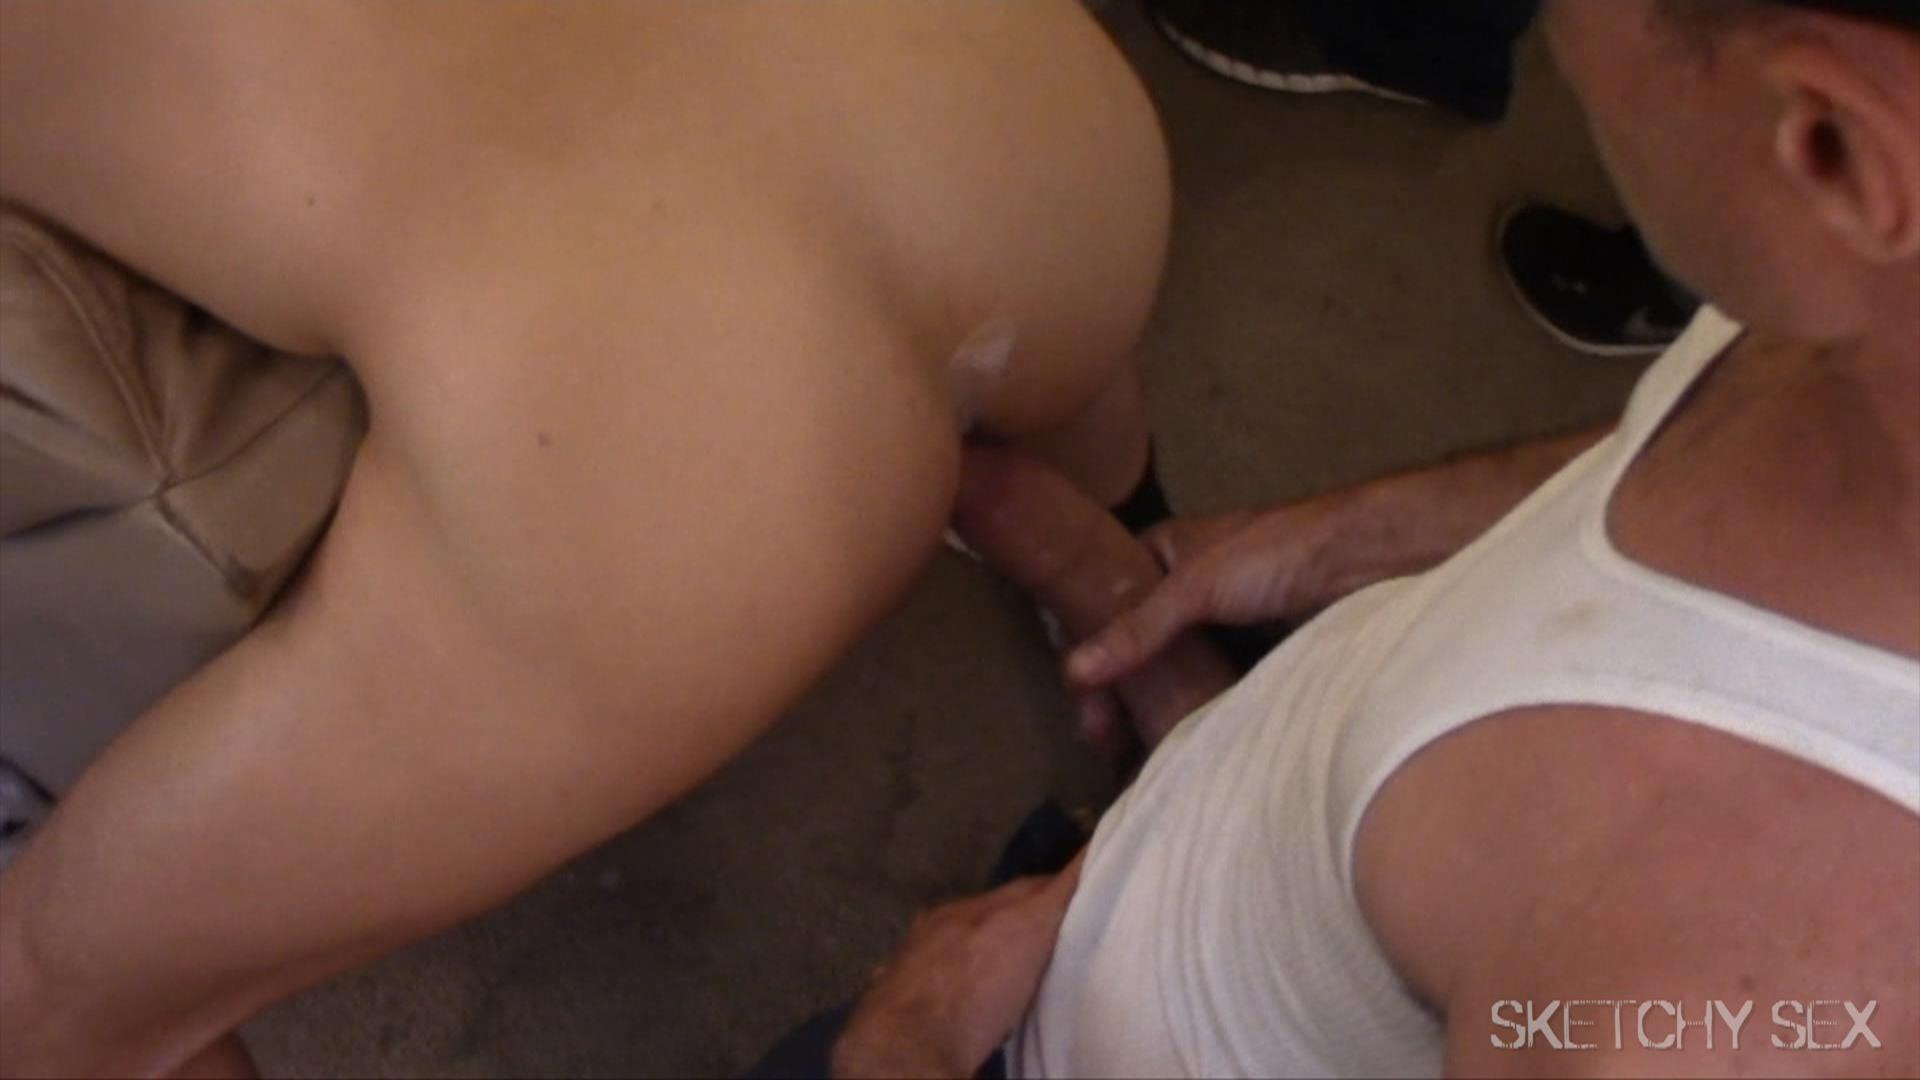 Sketchy Sex Download Free Video Bareback Sex Party Amateur Gay Porn 21 Jock Takes As Many Raw Loads Up The Ass As Possible